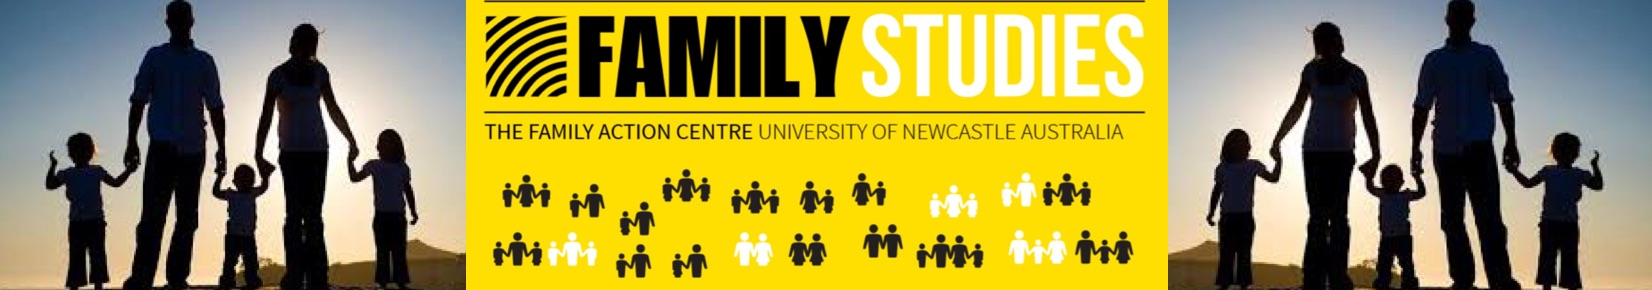 Family Studies at UON